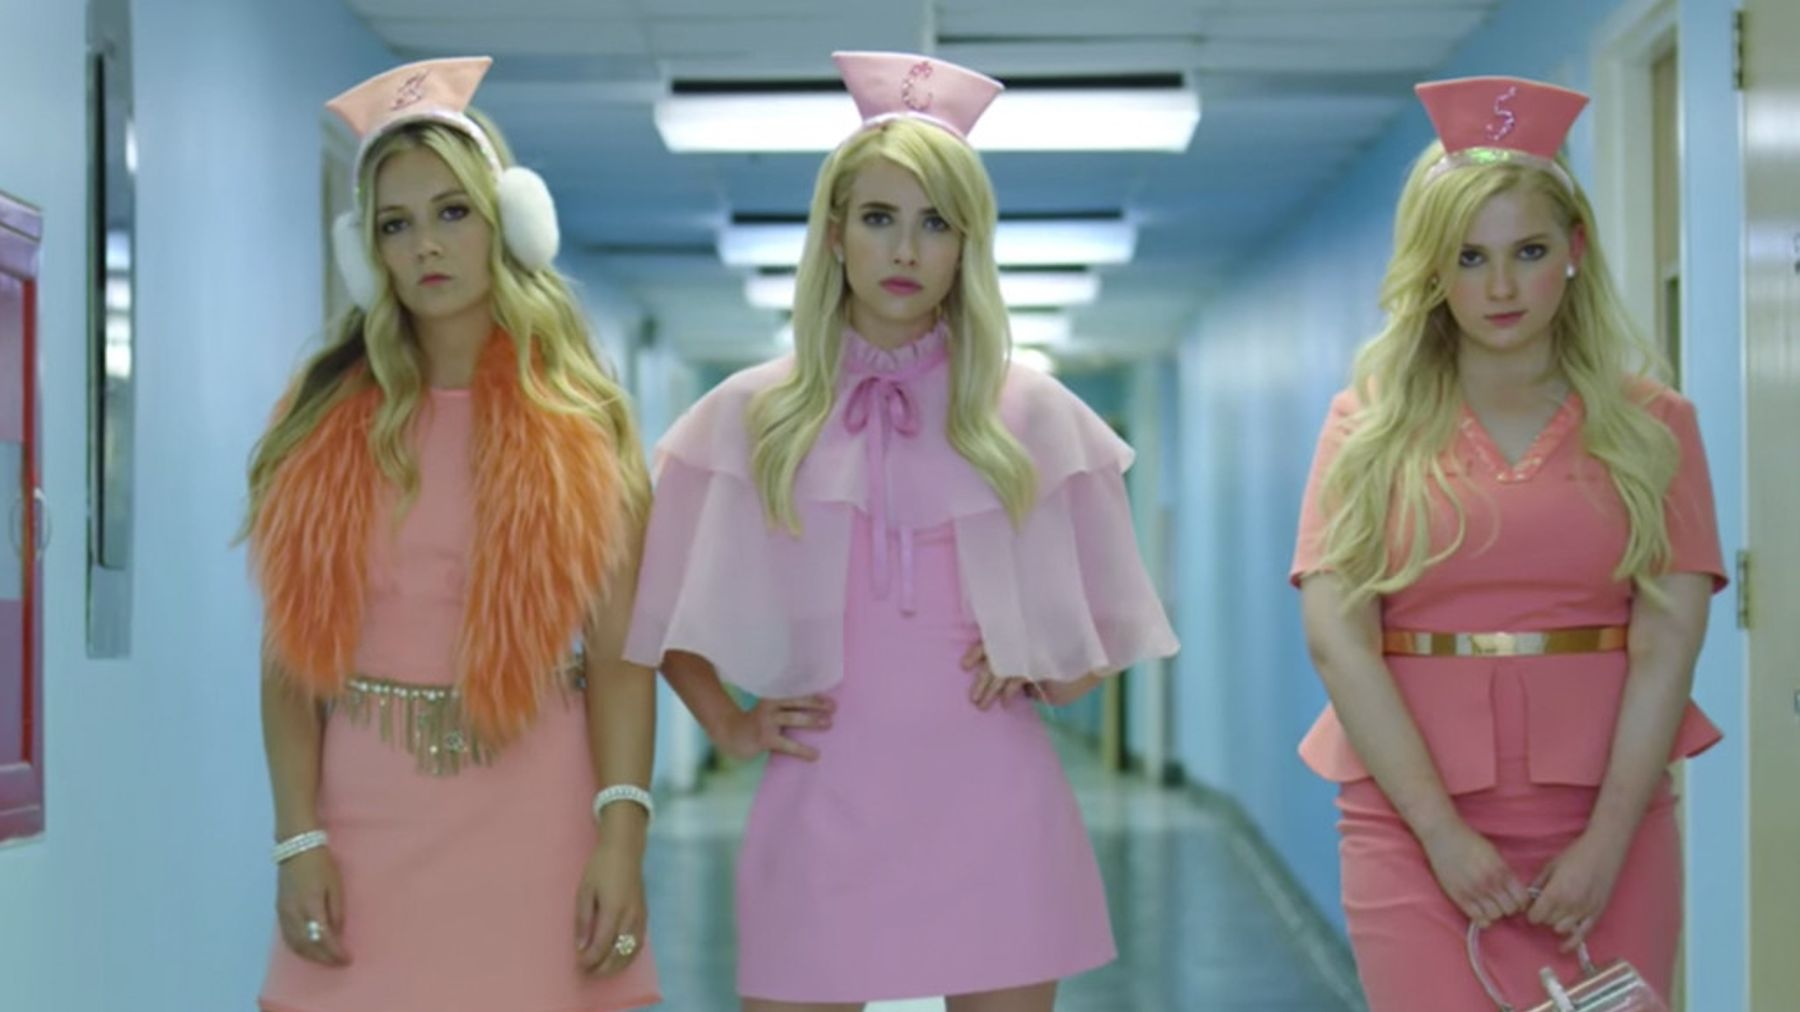 Trio Halloween Costume Ideas 2019.12 Group Halloween Costume Ideas From Scream Queens To Clueless